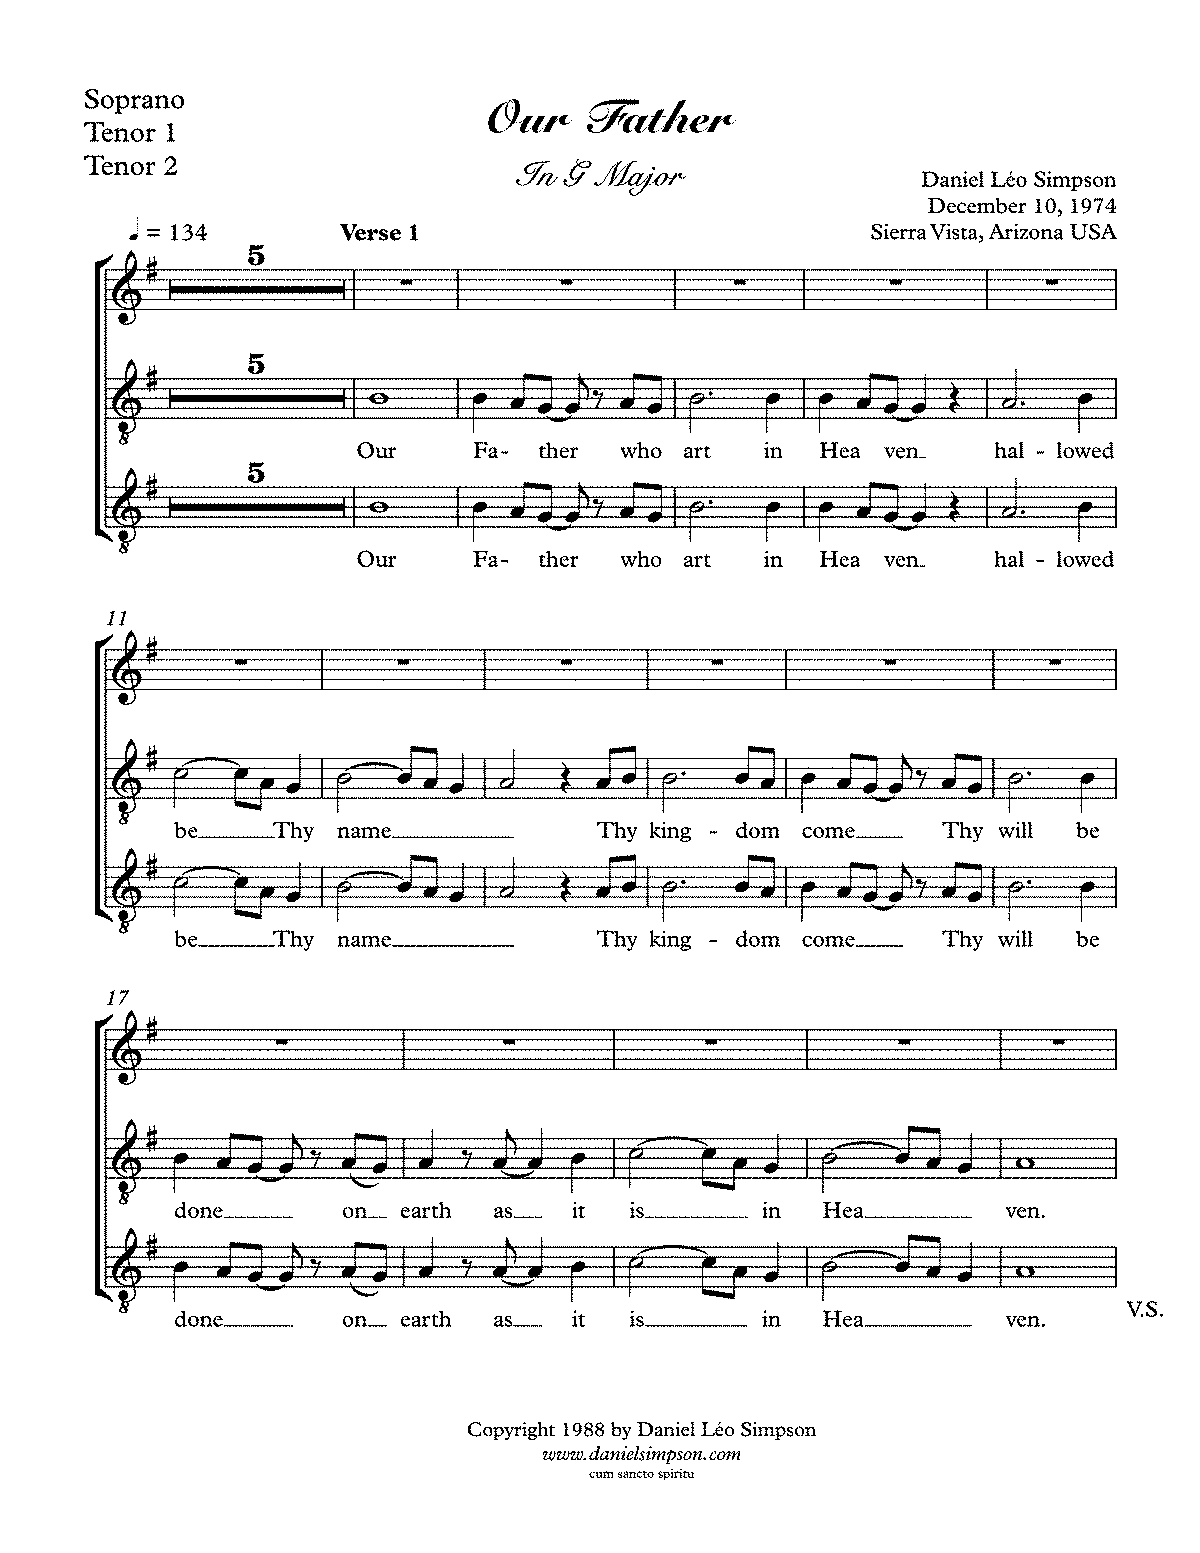 PMLP487462-VOCALS-our-father-fast-simpson-full-score-imslp-102913.pdf